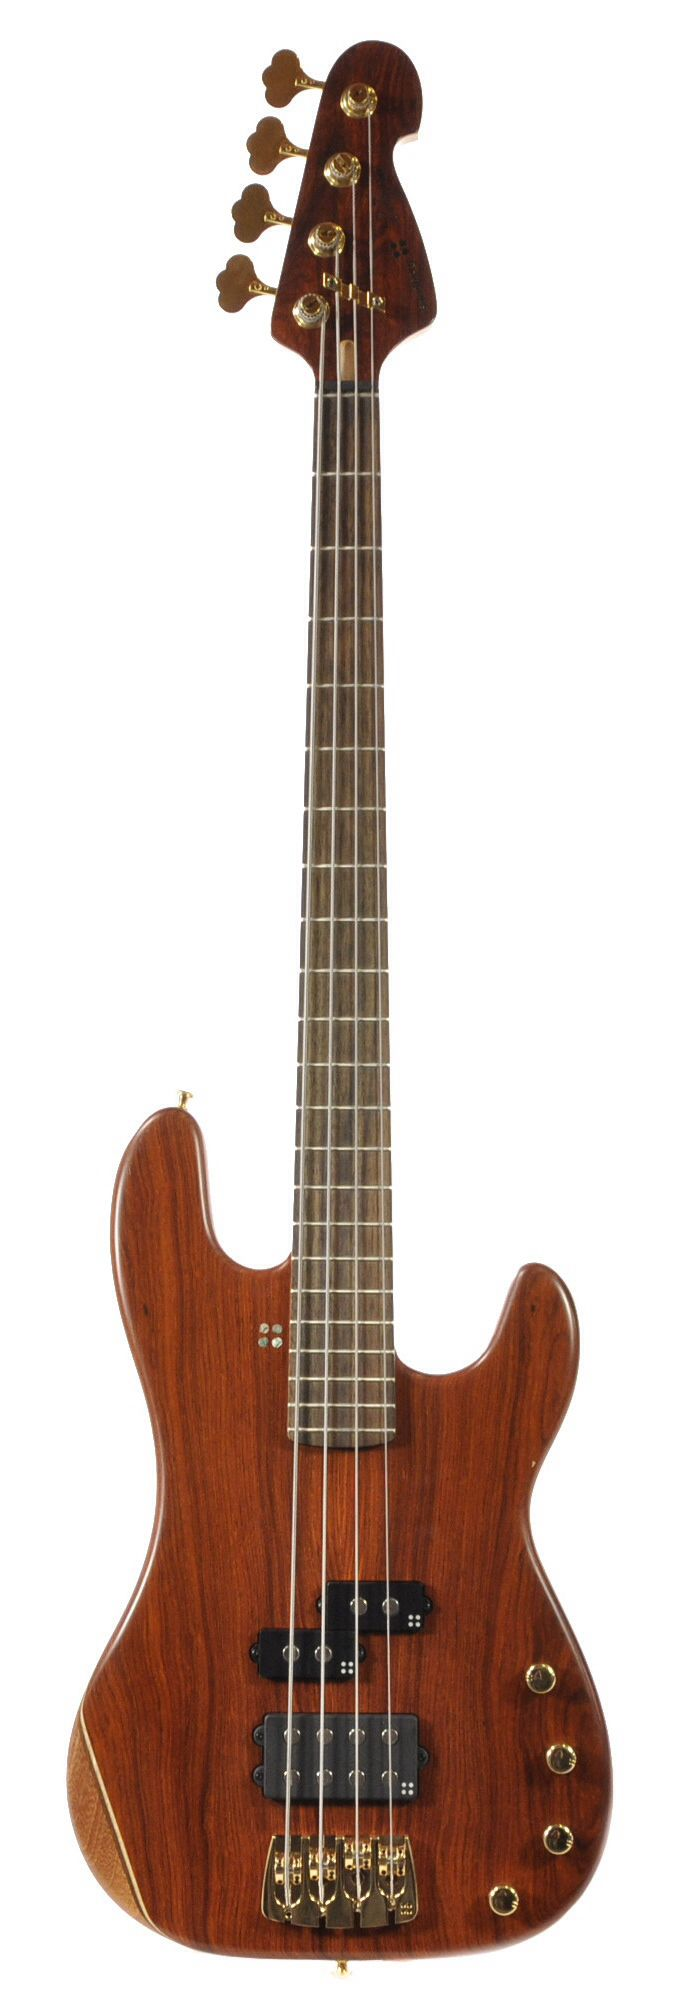 SANDBERG VM4 Bass Cocobolo Top   Chicago Music Exchange If I could play guitar...this would be the one.